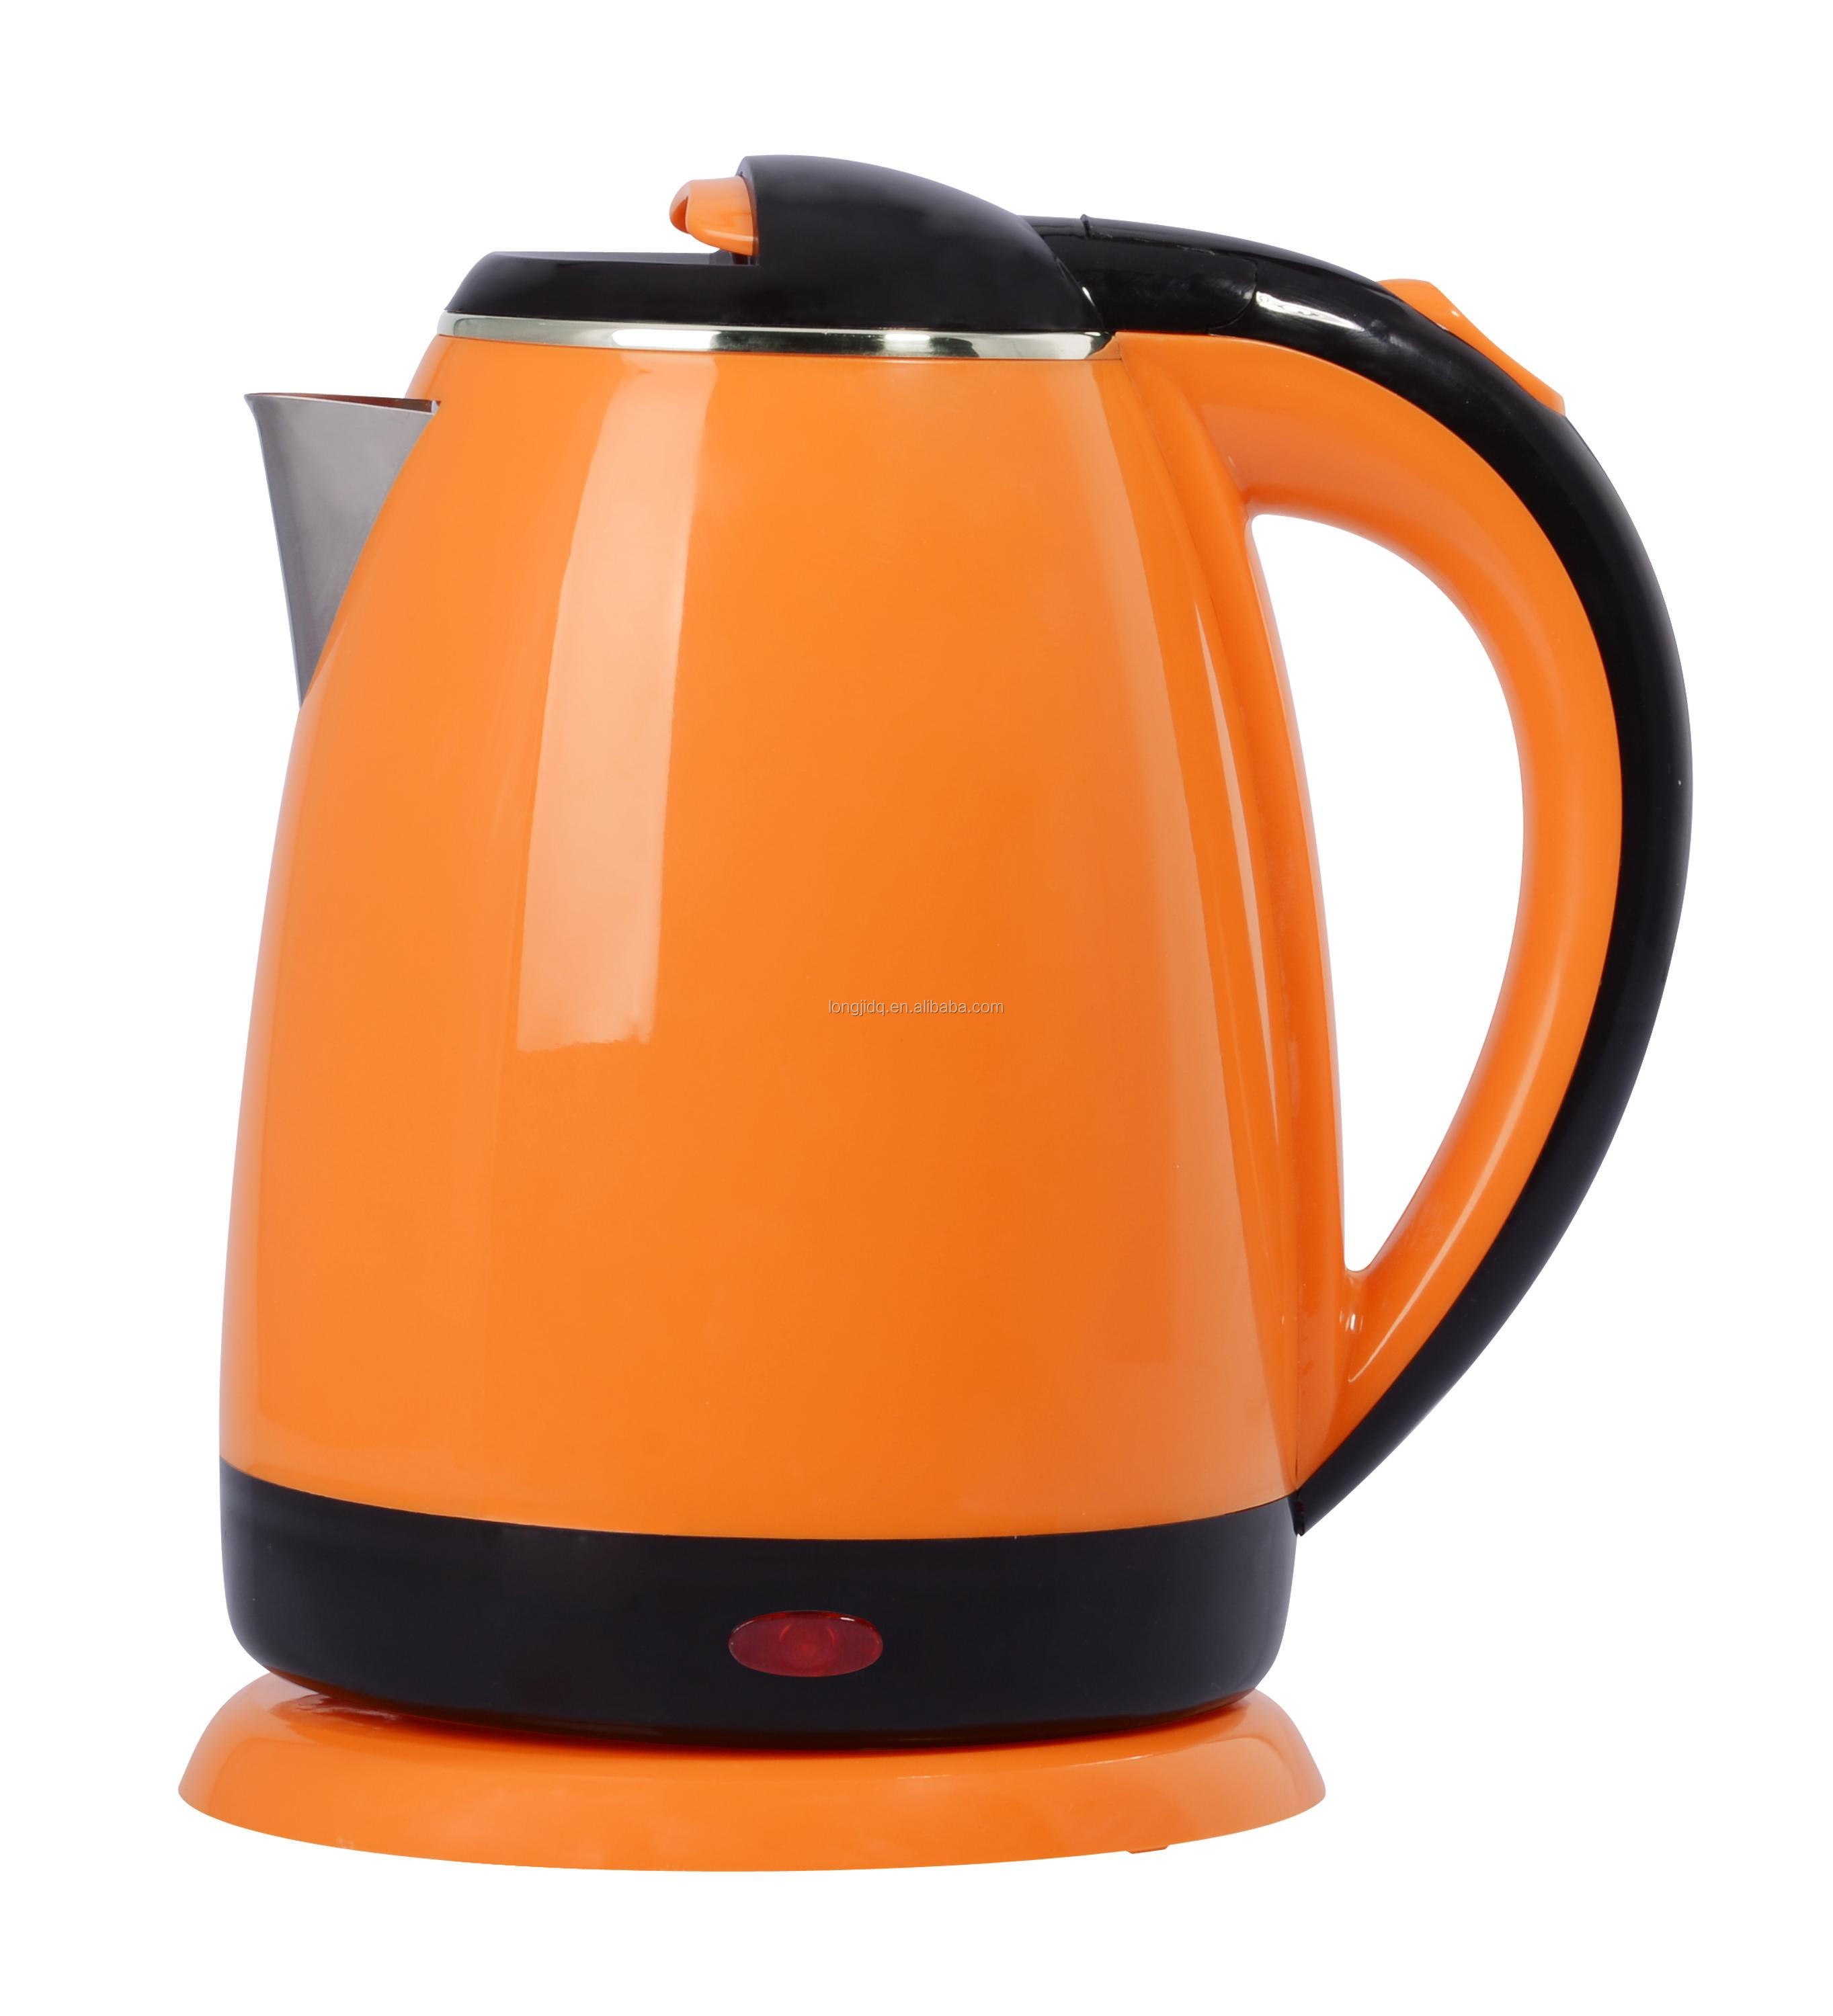 2017 sales promotion plastic + Stainless steel inner pot two layers electrice kettle 1.5L 1.6L